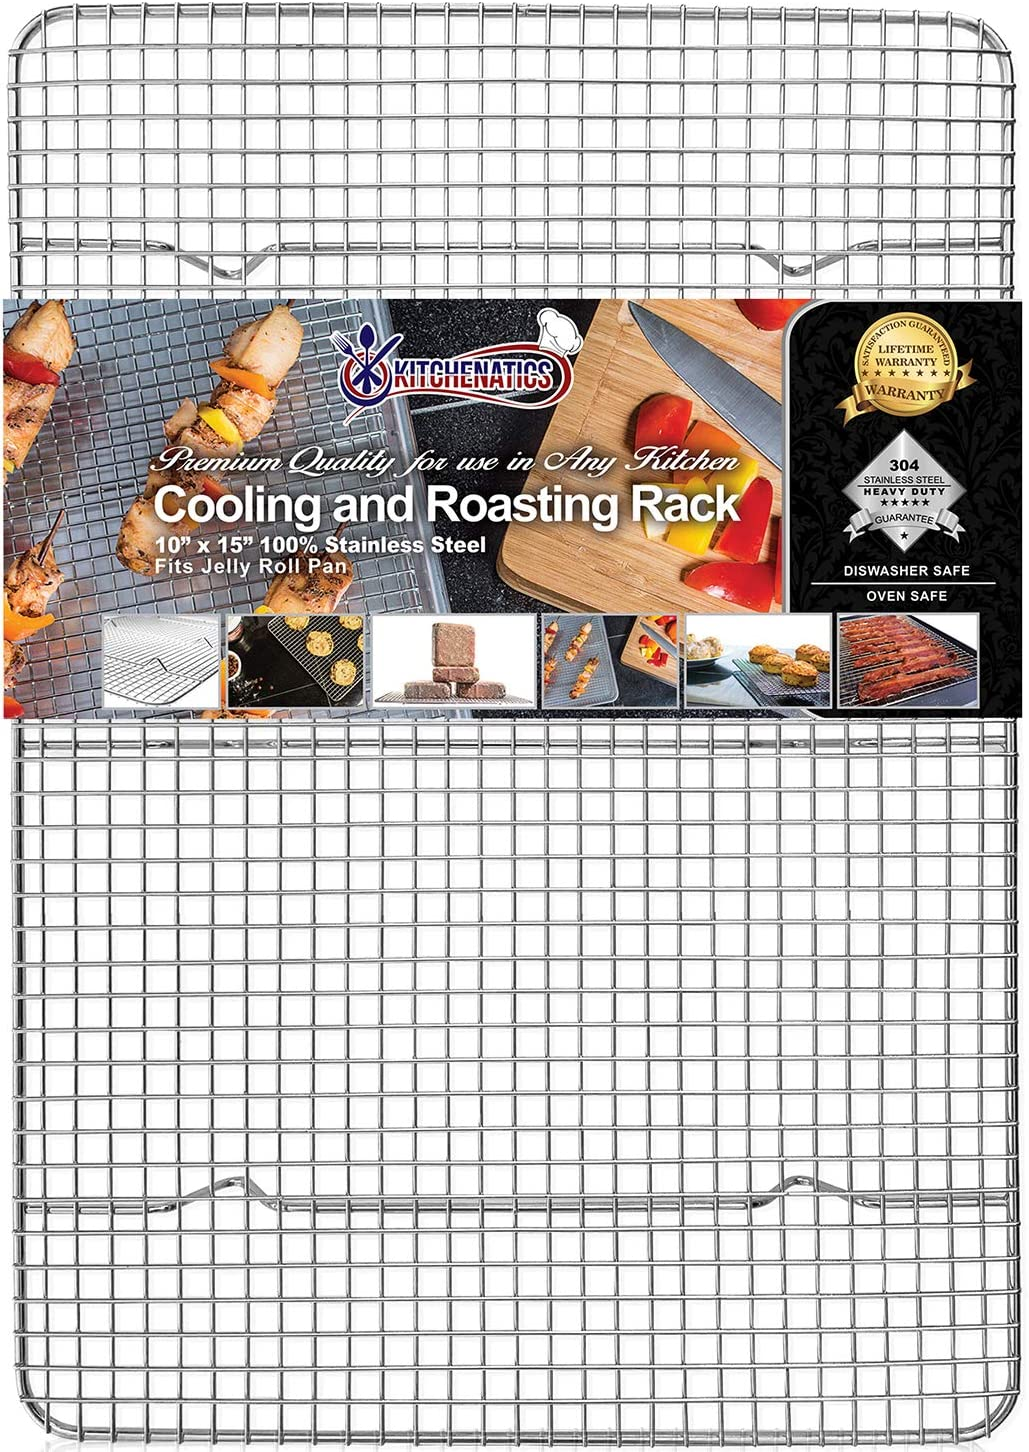 """Kitchenatics Commercial Grade 100% Stainless Steel Roasting and Cooling Rack, Thick-Wire Grid Fits Jelly Roll Pan Oven & Grill Safe Rust-Resistant for Cooking, Baking, BBQ, Heavy Duty - 10"""" x 15"""""""